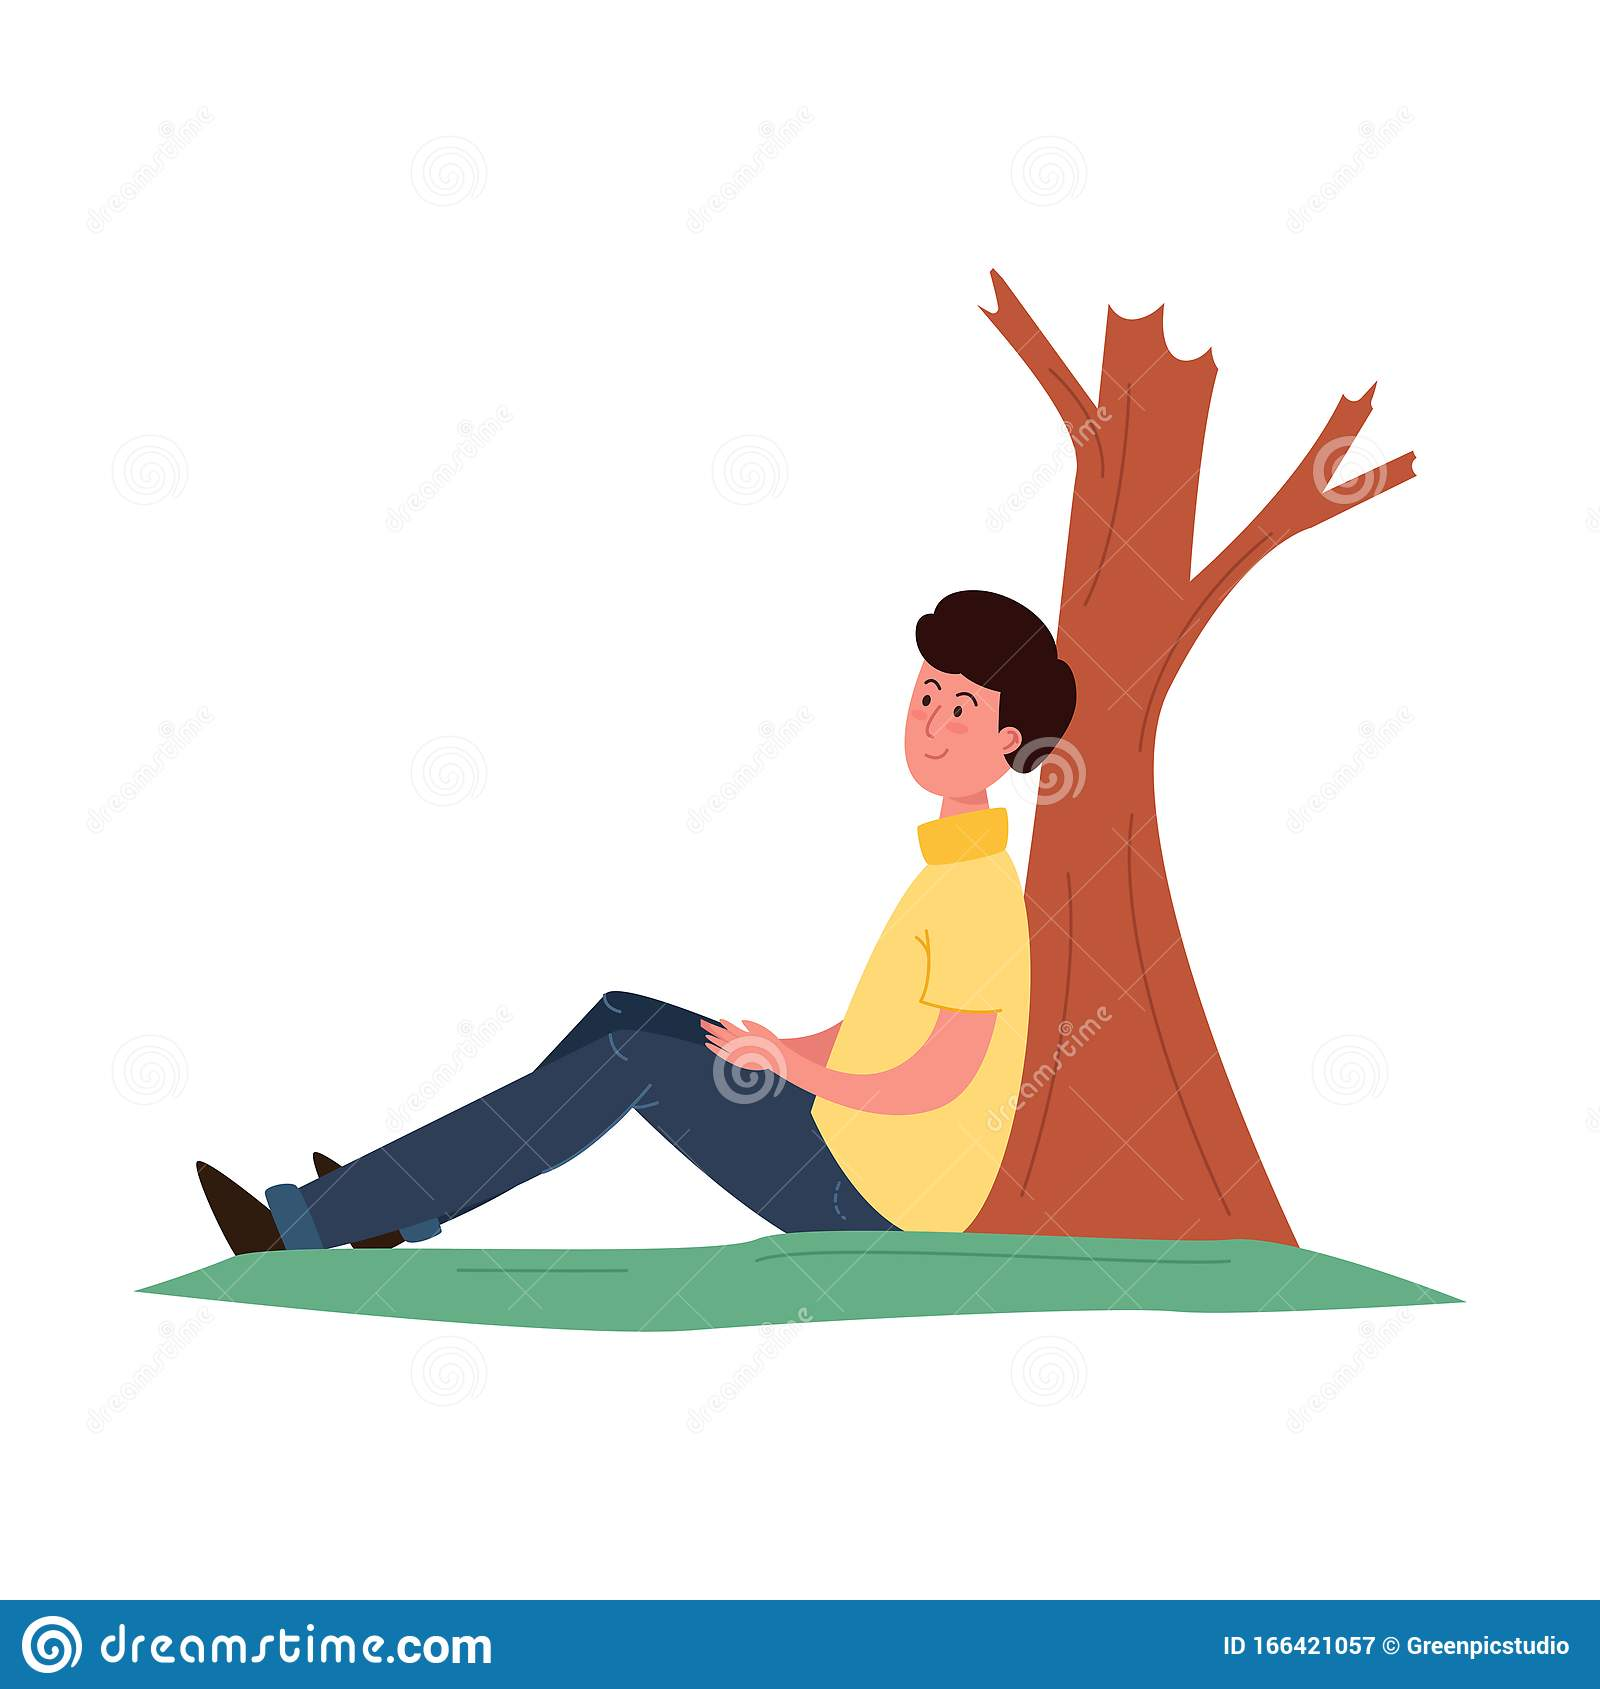 Cartoon Man Sitting Under Tree Stock Illustrations 153 Cartoon Man Sitting Under Tree Stock Illustrations Vectors Clipart Dreamstime The player must construct a trap using one rope and one small fishing net. https www dreamstime com young happy smiling black haired man taking rest sitting green grass under tree relax time concept isolated vector image166421057